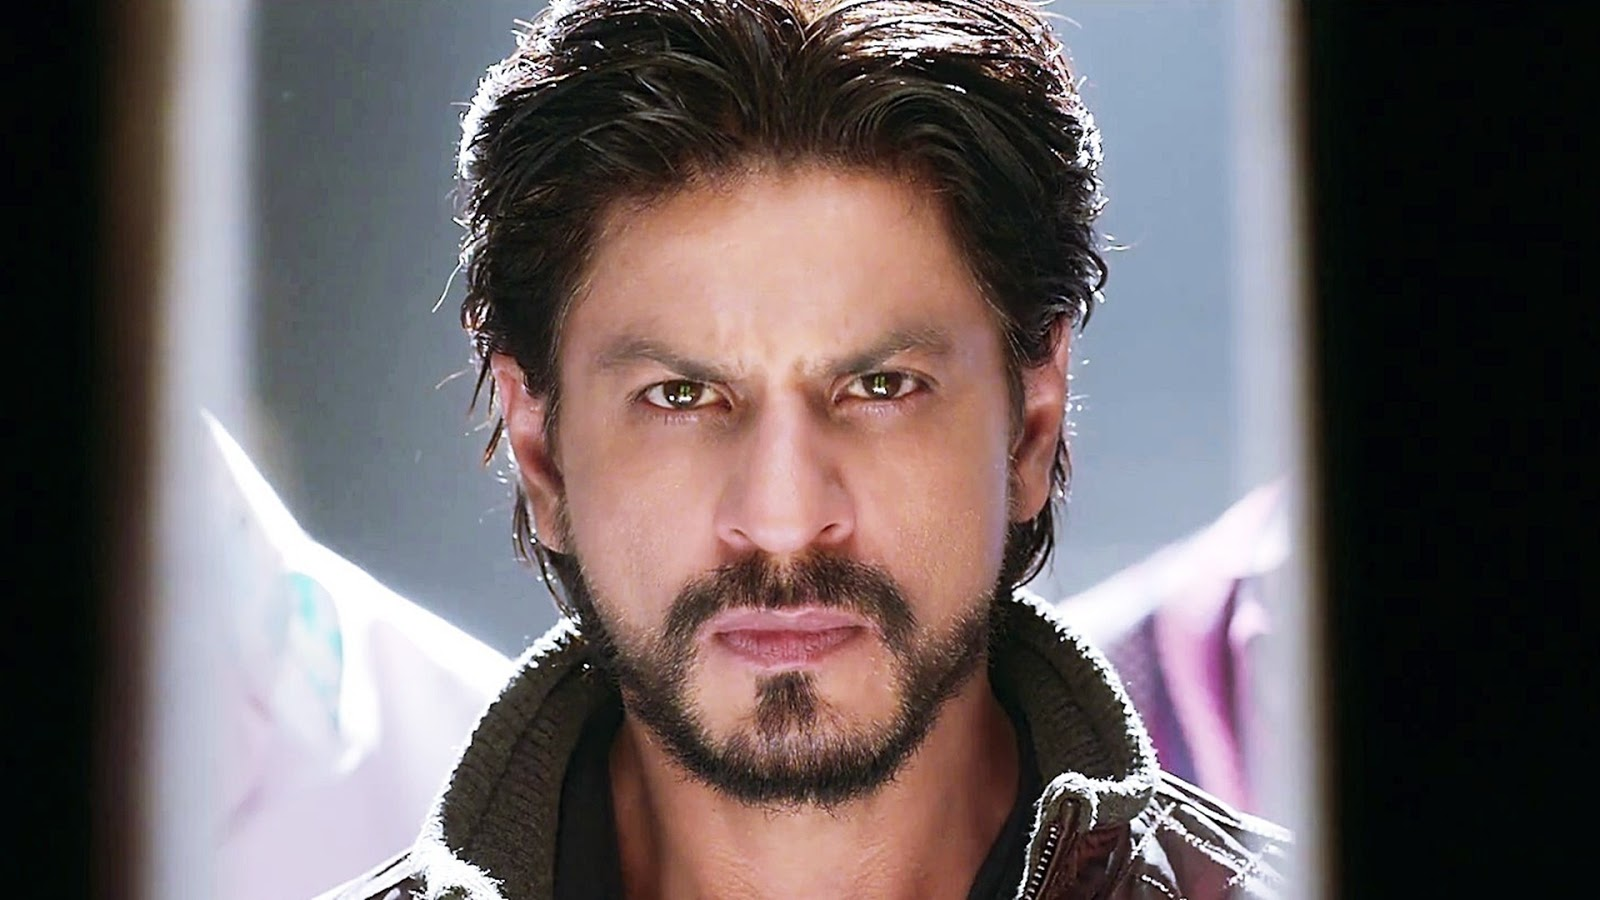 shahrukh khan - best new hd wallpaper download for crickter wwe